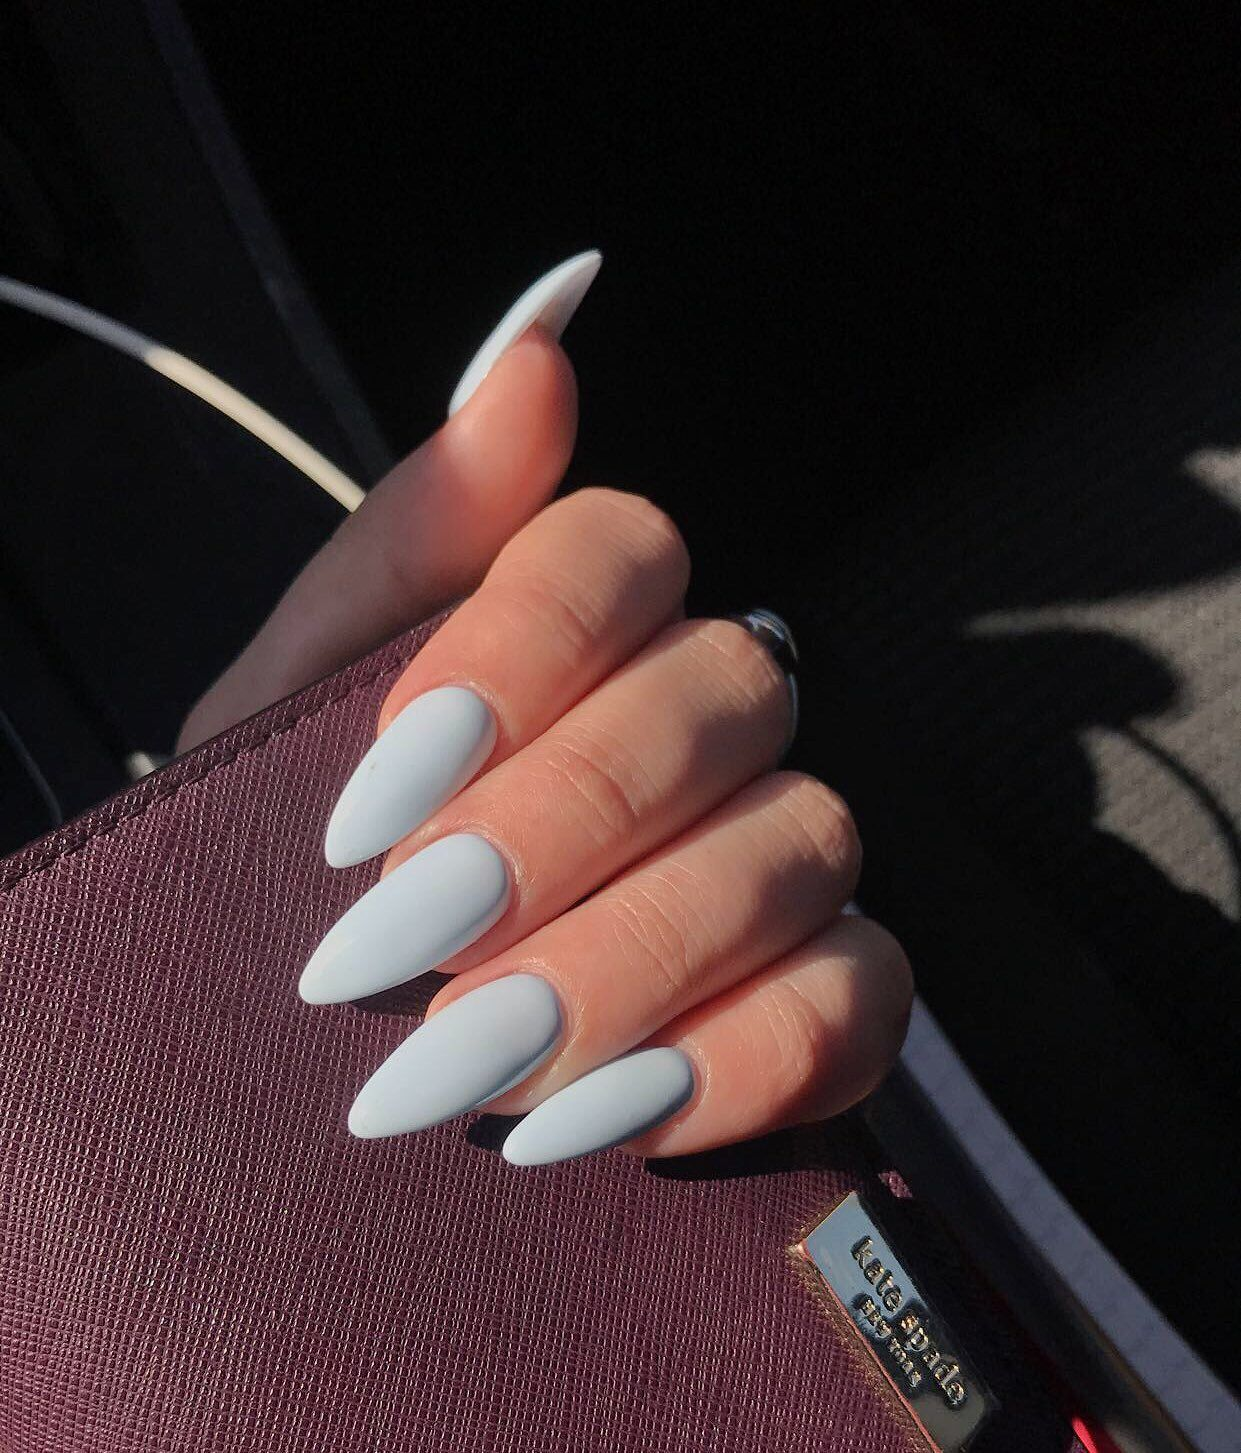 Xoxo Get 10 And Free Delivery On Groceries From Instacart Use My Code Dabram1f61dc In 2020 Almond Acrylic Nails Almond Nail Art Dream Nails